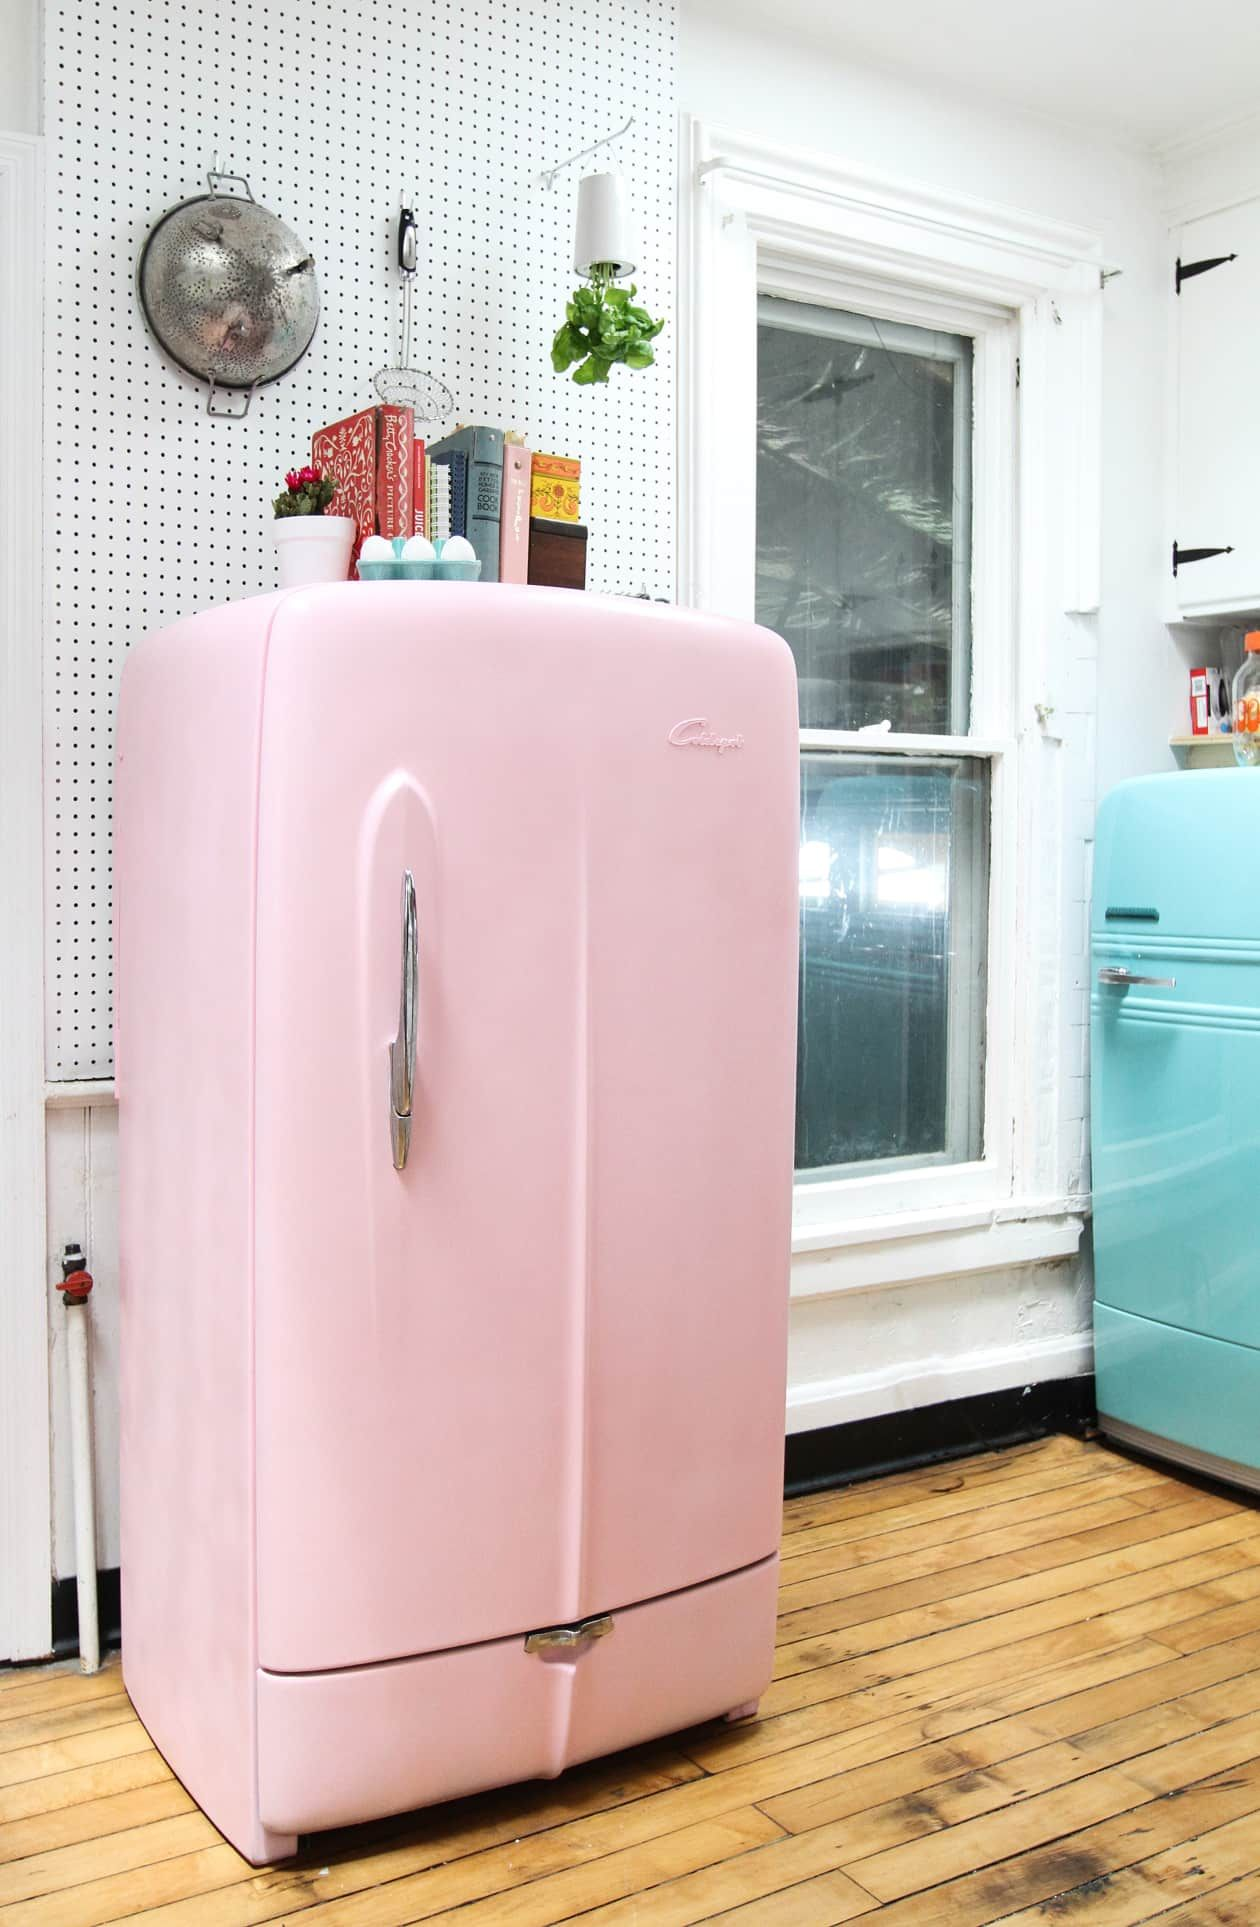 Wishing For A Colorful Smeg Fridge Here S How To Paint A Vintage Refrigerator Instead Vintage Refrigerator Smeg Fridge Cheap Appliances